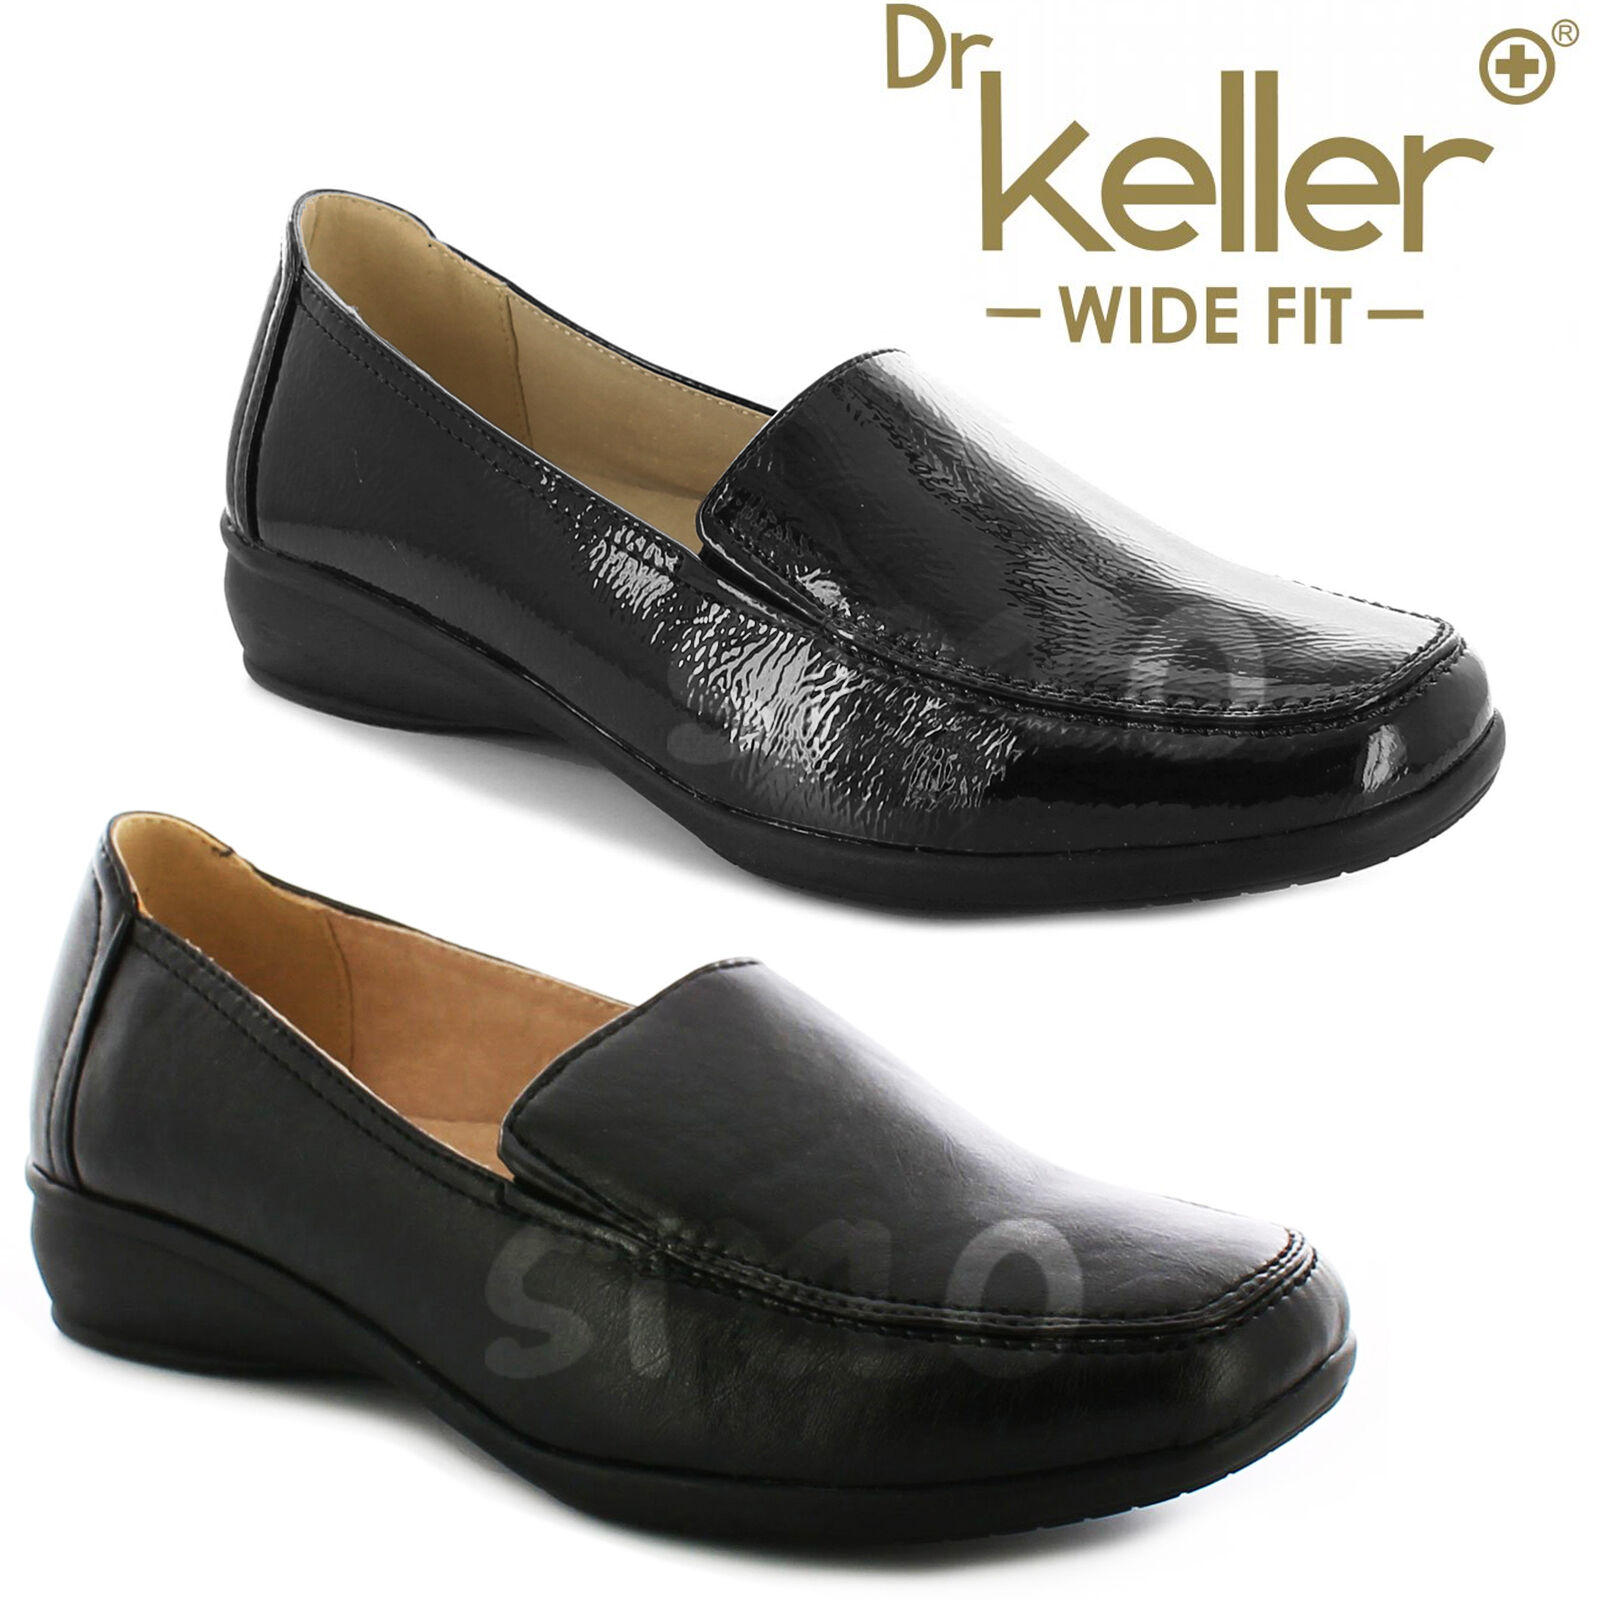 f10785ccced Details about LADIES WOMEN WIDE FIT SHOES LOW WEDGE LEATHER LINING WORK  MOCCASIN CASUAL LOAFER